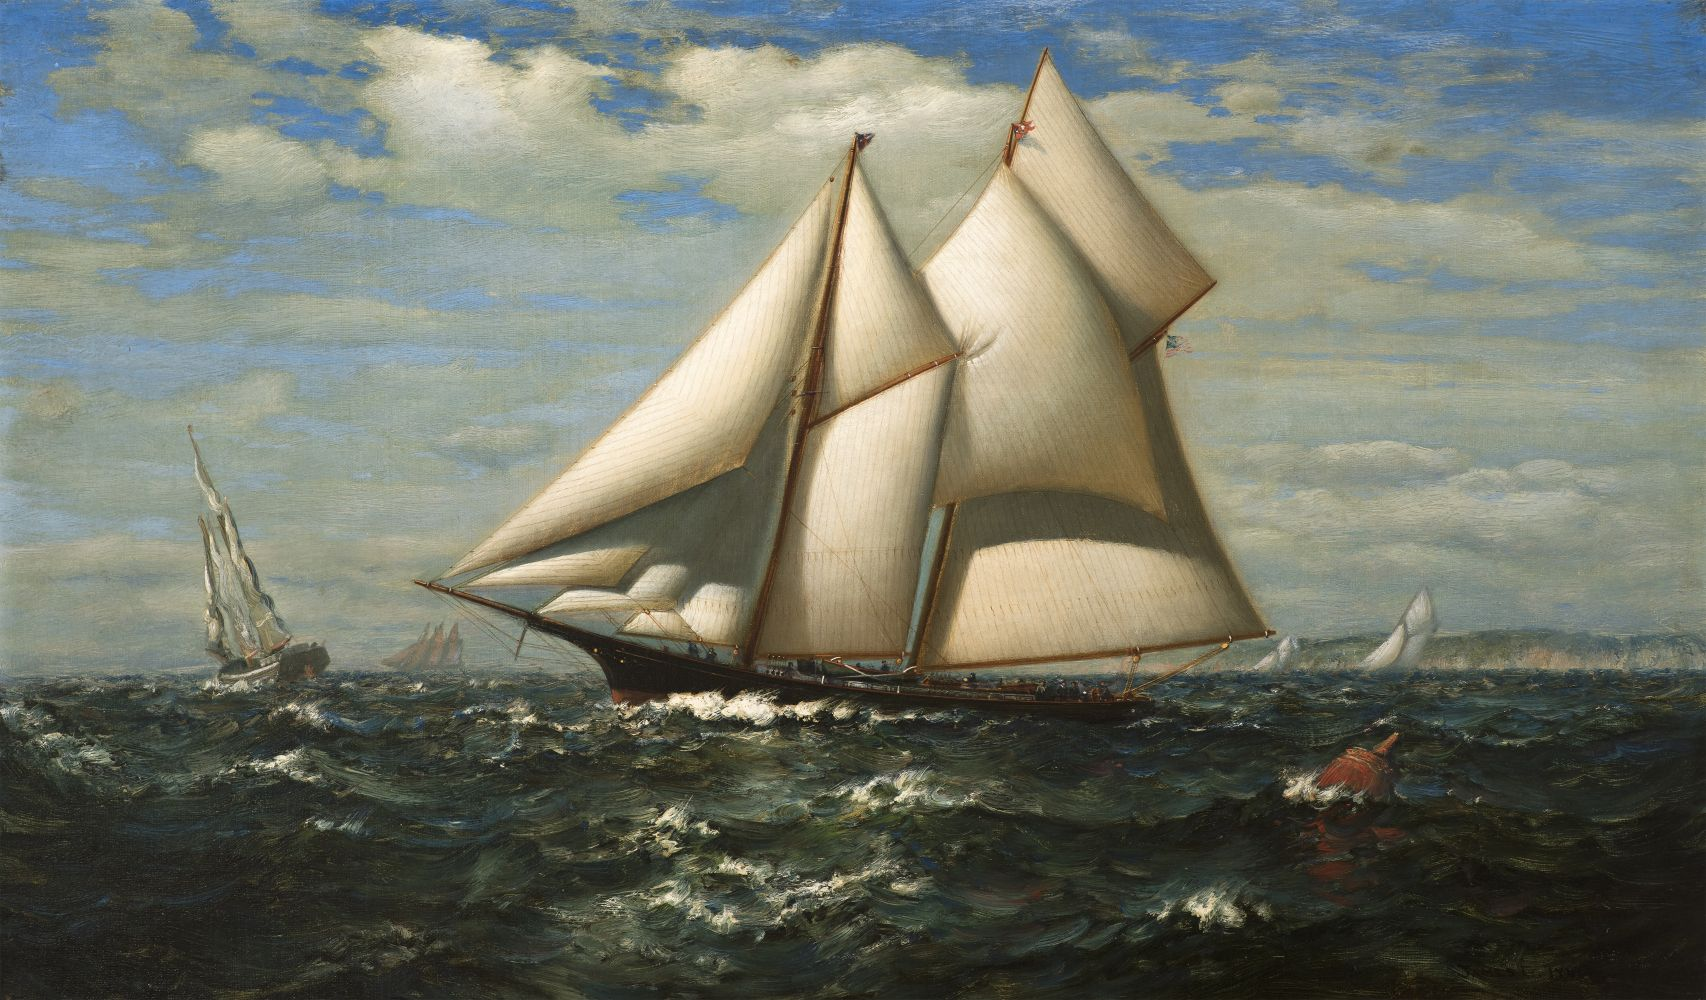 James Gale Tyler (1855–1931), The Yacht, Water Witch, oil on canvas, 18 x 30 in., signed lower right: James G. Tyler